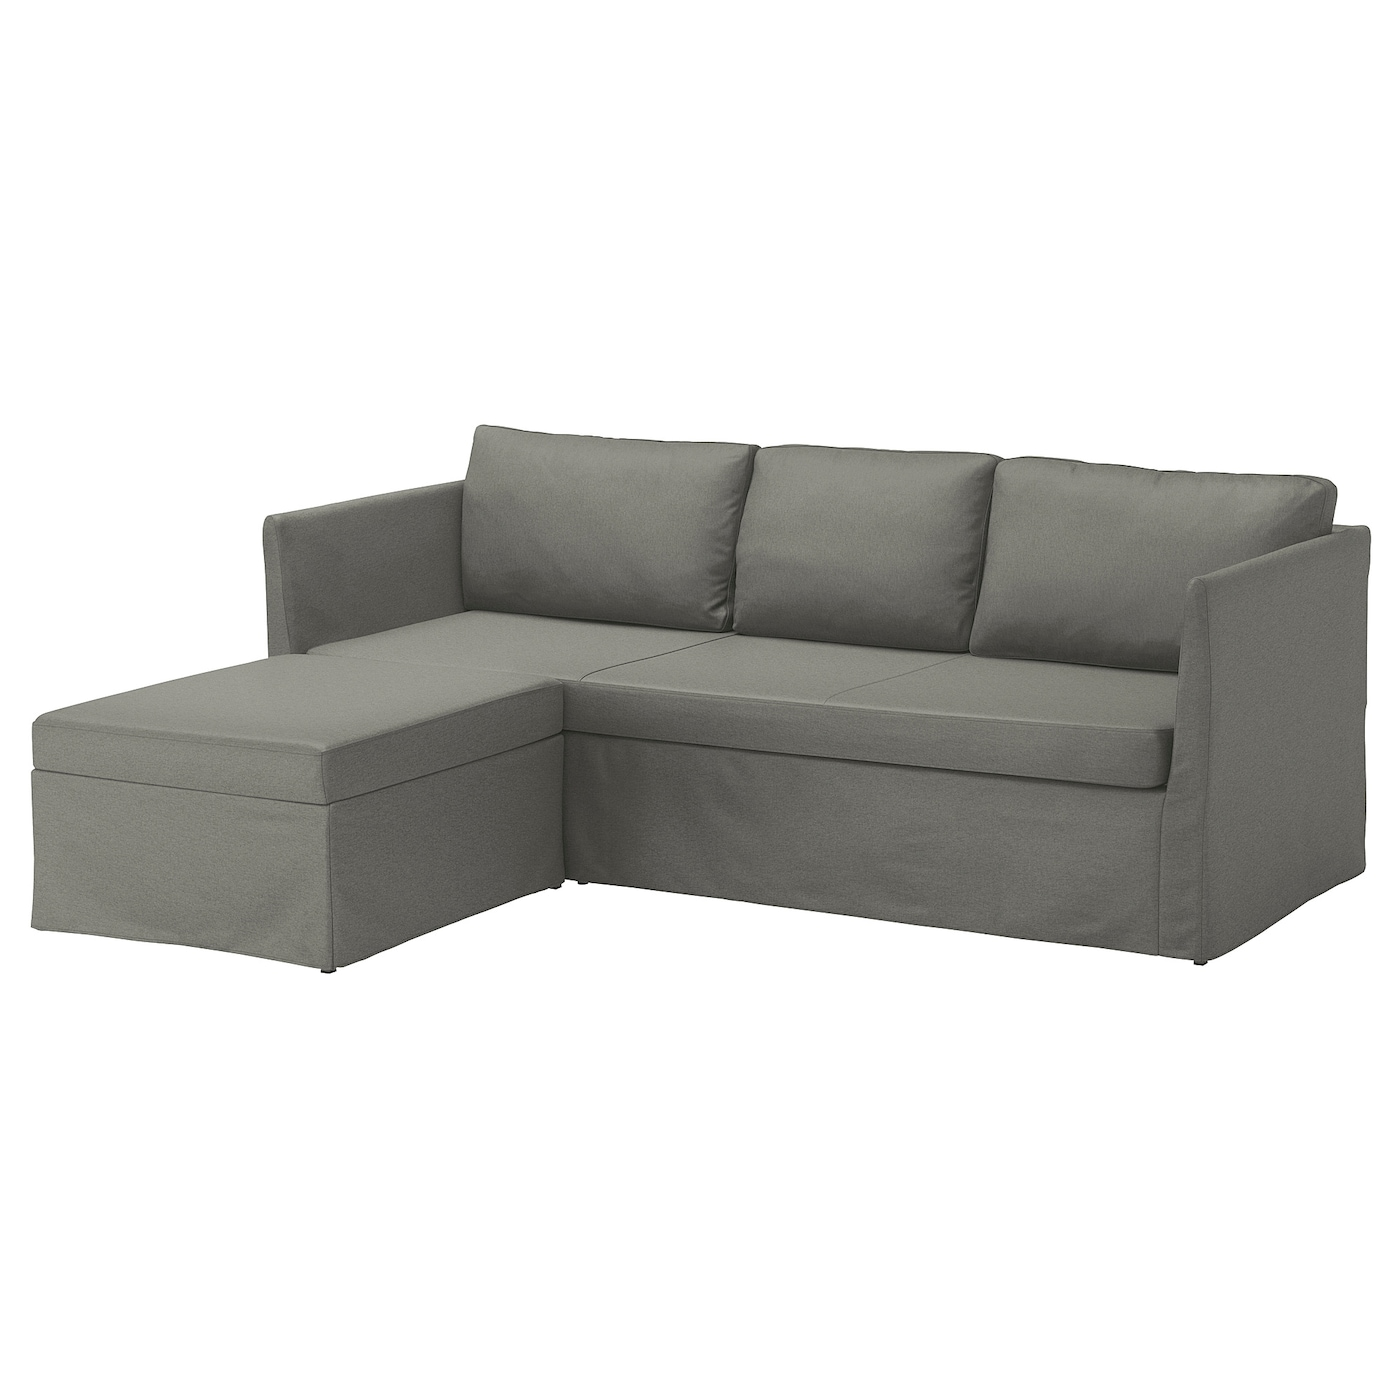 Corner Sofa Beds, Futons & Chair Beds | IKEA